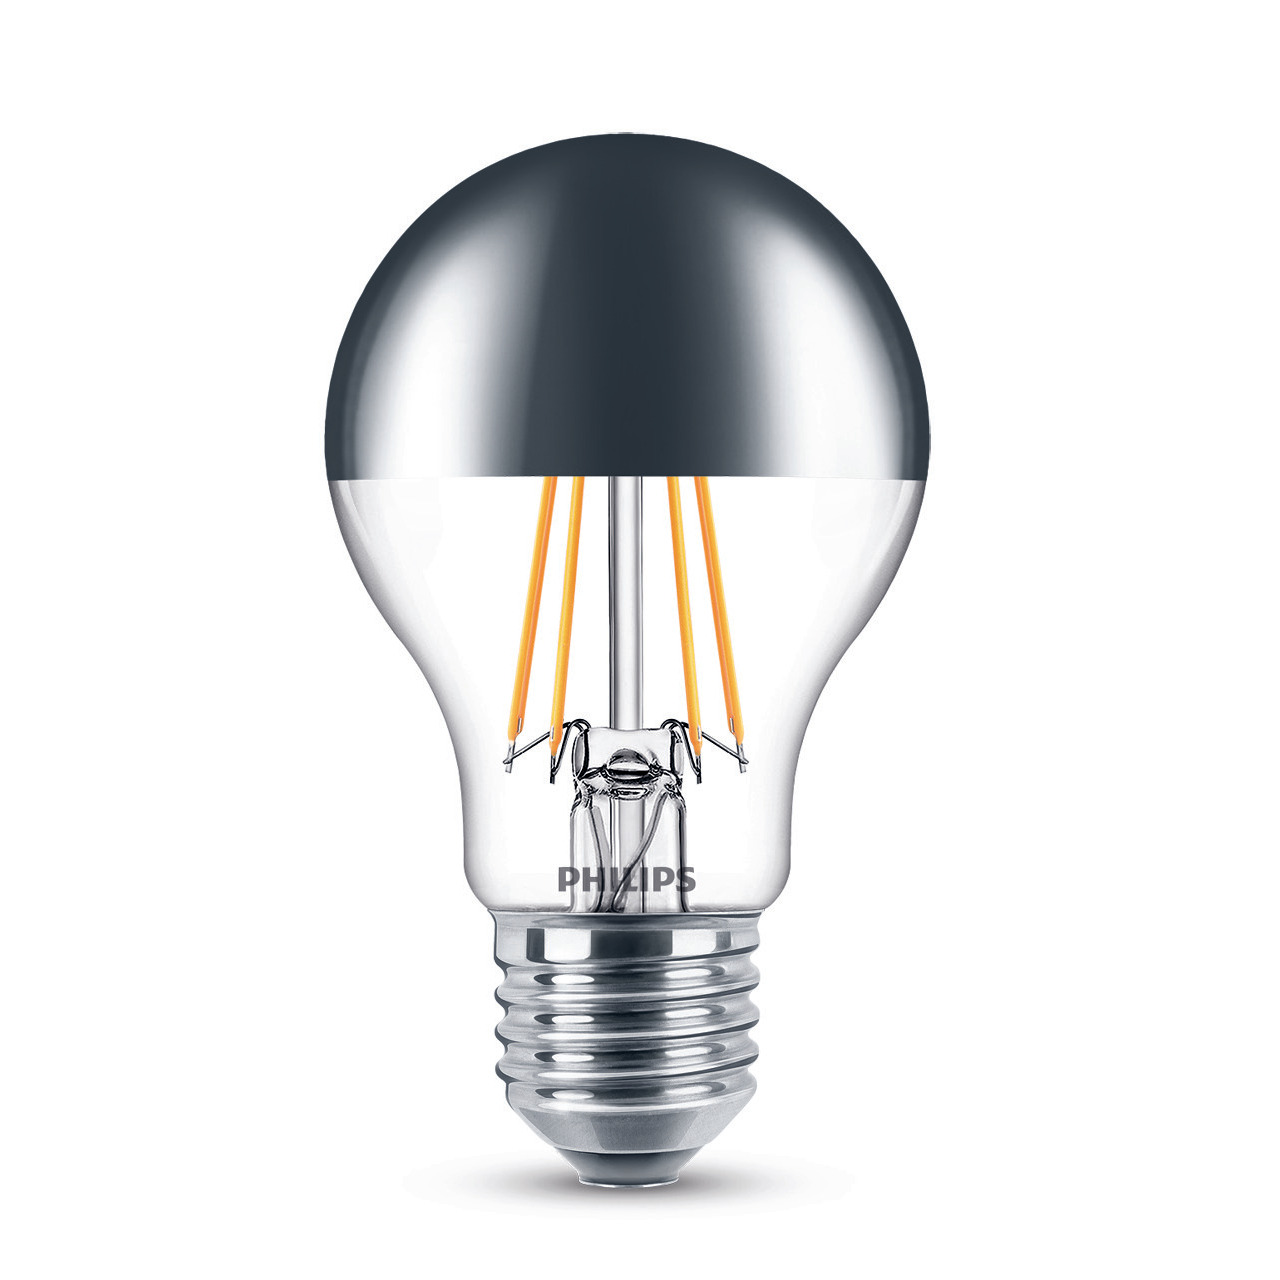 Philips 7-2-W-LED-Spiegelkopflampe E27- dimmbar- warmweiss